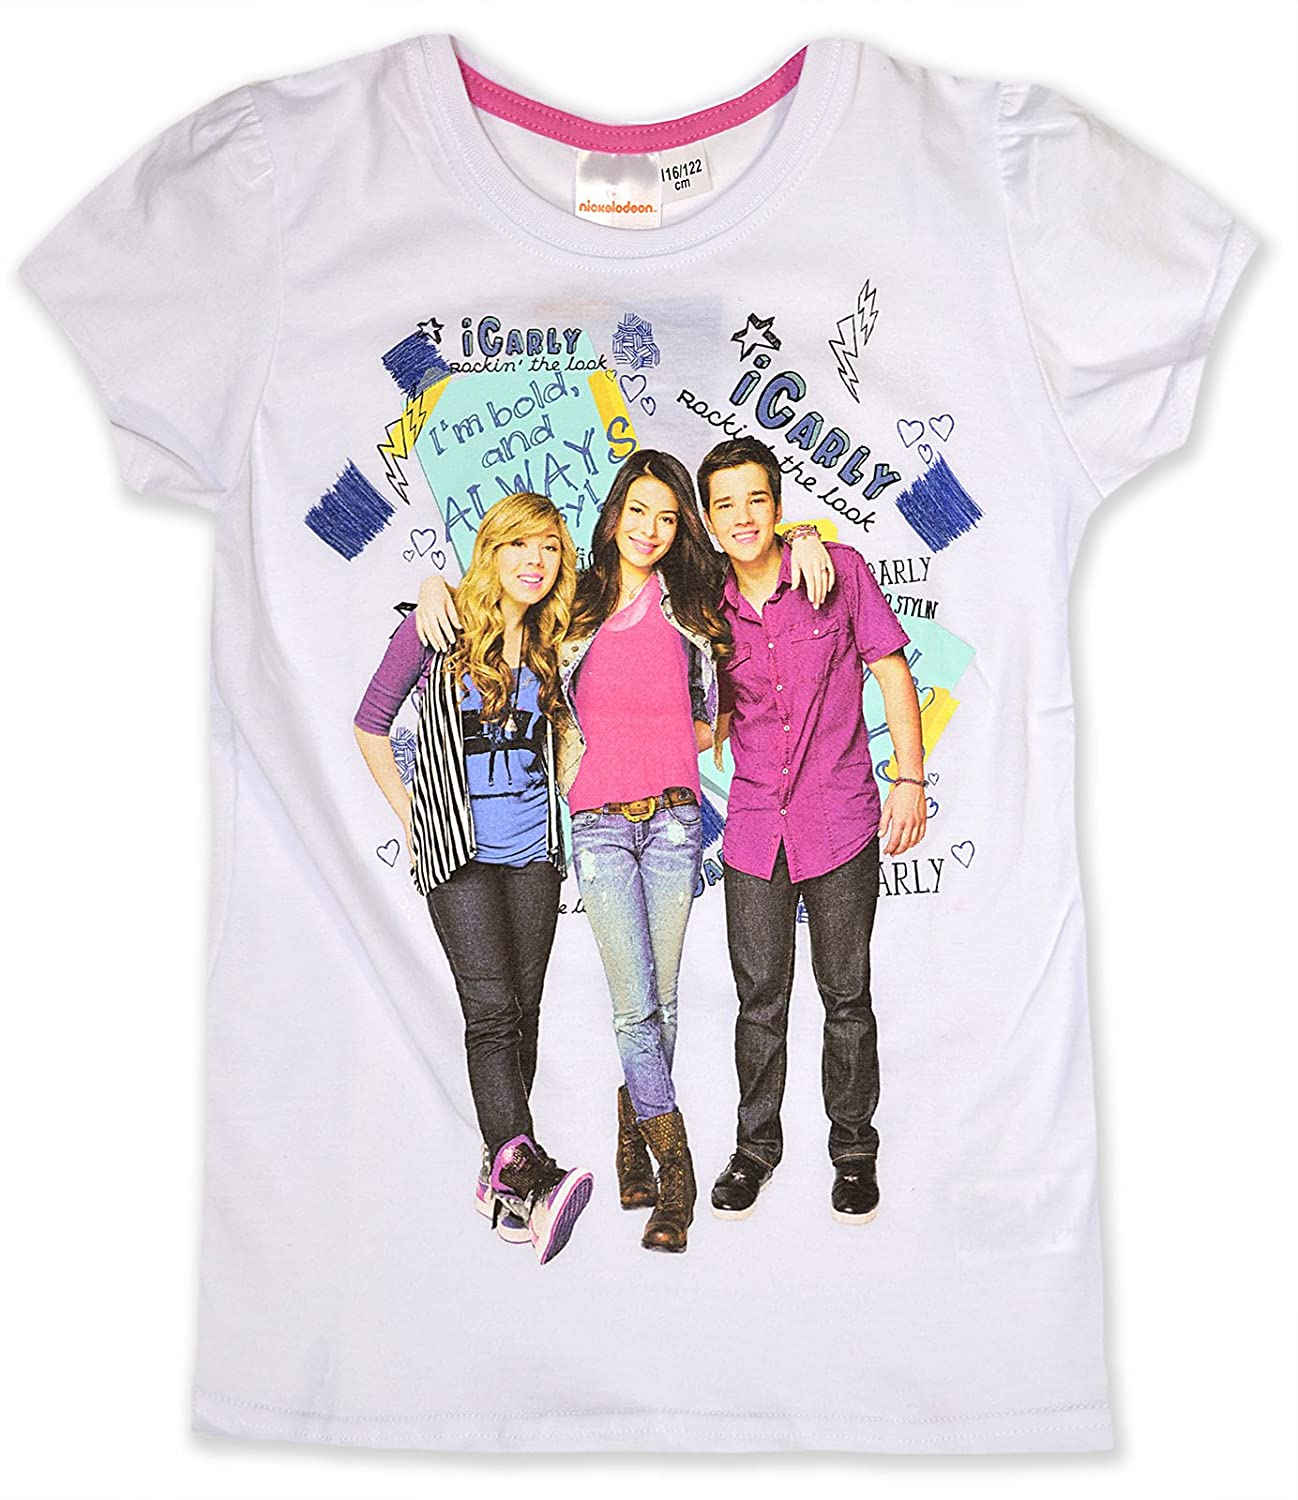 Girls iCarly T Shirt Kids Short Sleeve Top Pink White New Age 6 7 8 ...